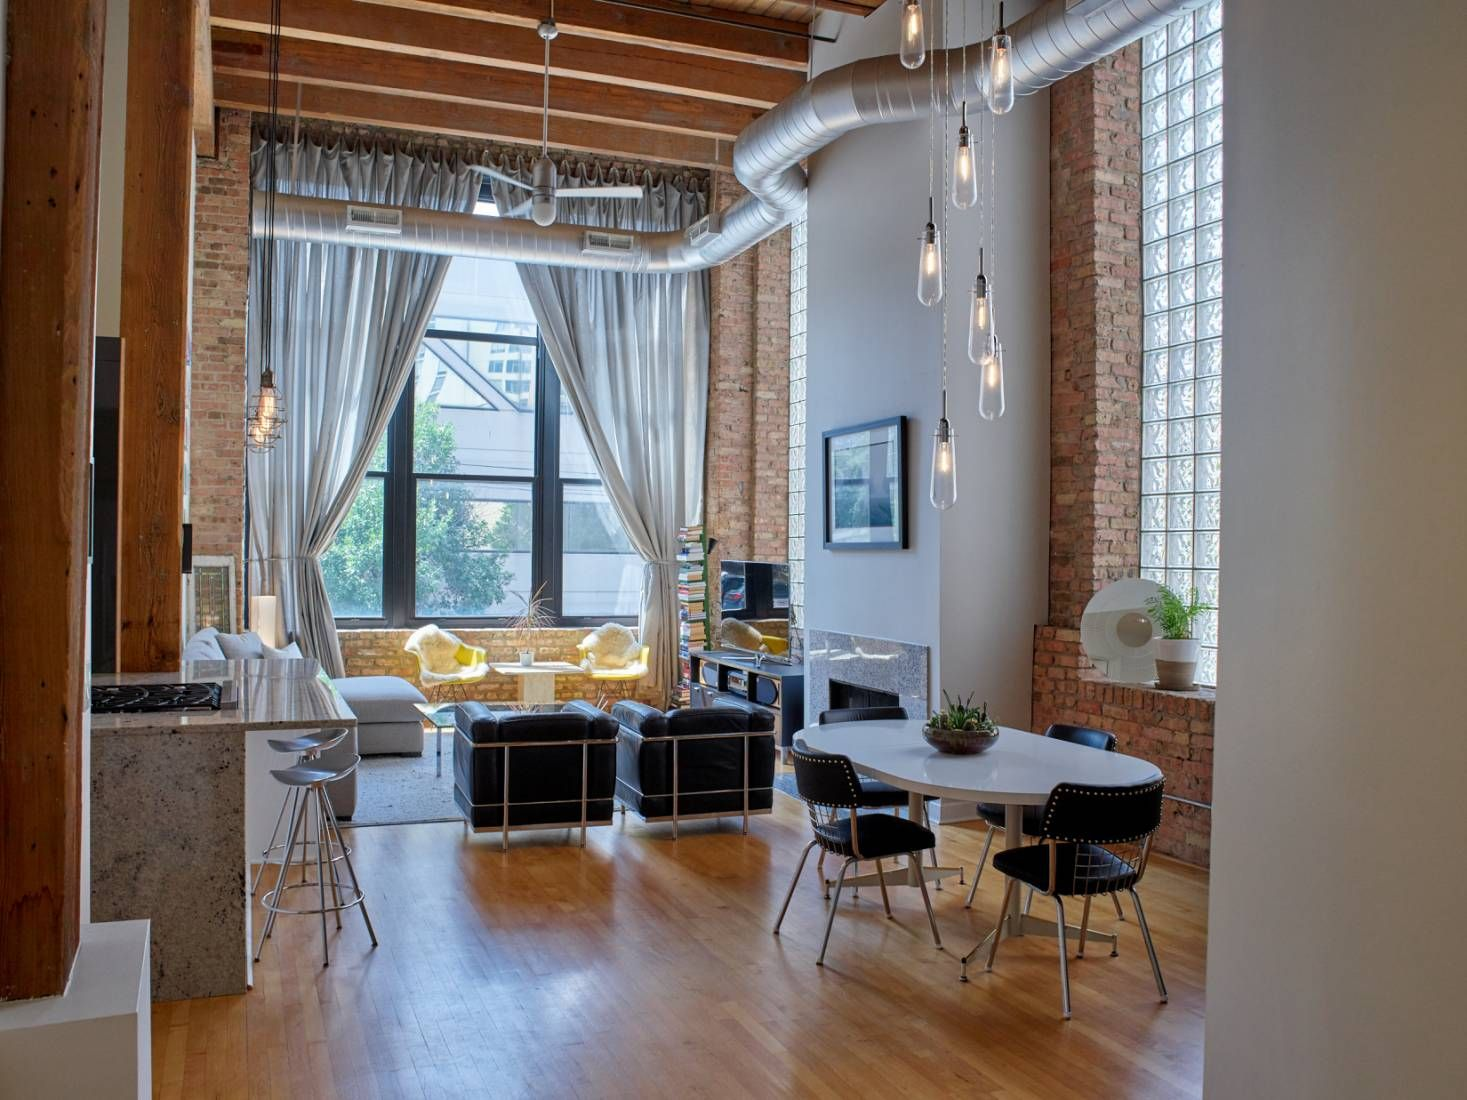 Spacious And Dreamy Timber Loft Apartment In The West Loop Neighborhood Of Chicago With Exposed Brick Exposed Duct W Loft Spaces Lofts For Rent Loft Apartment